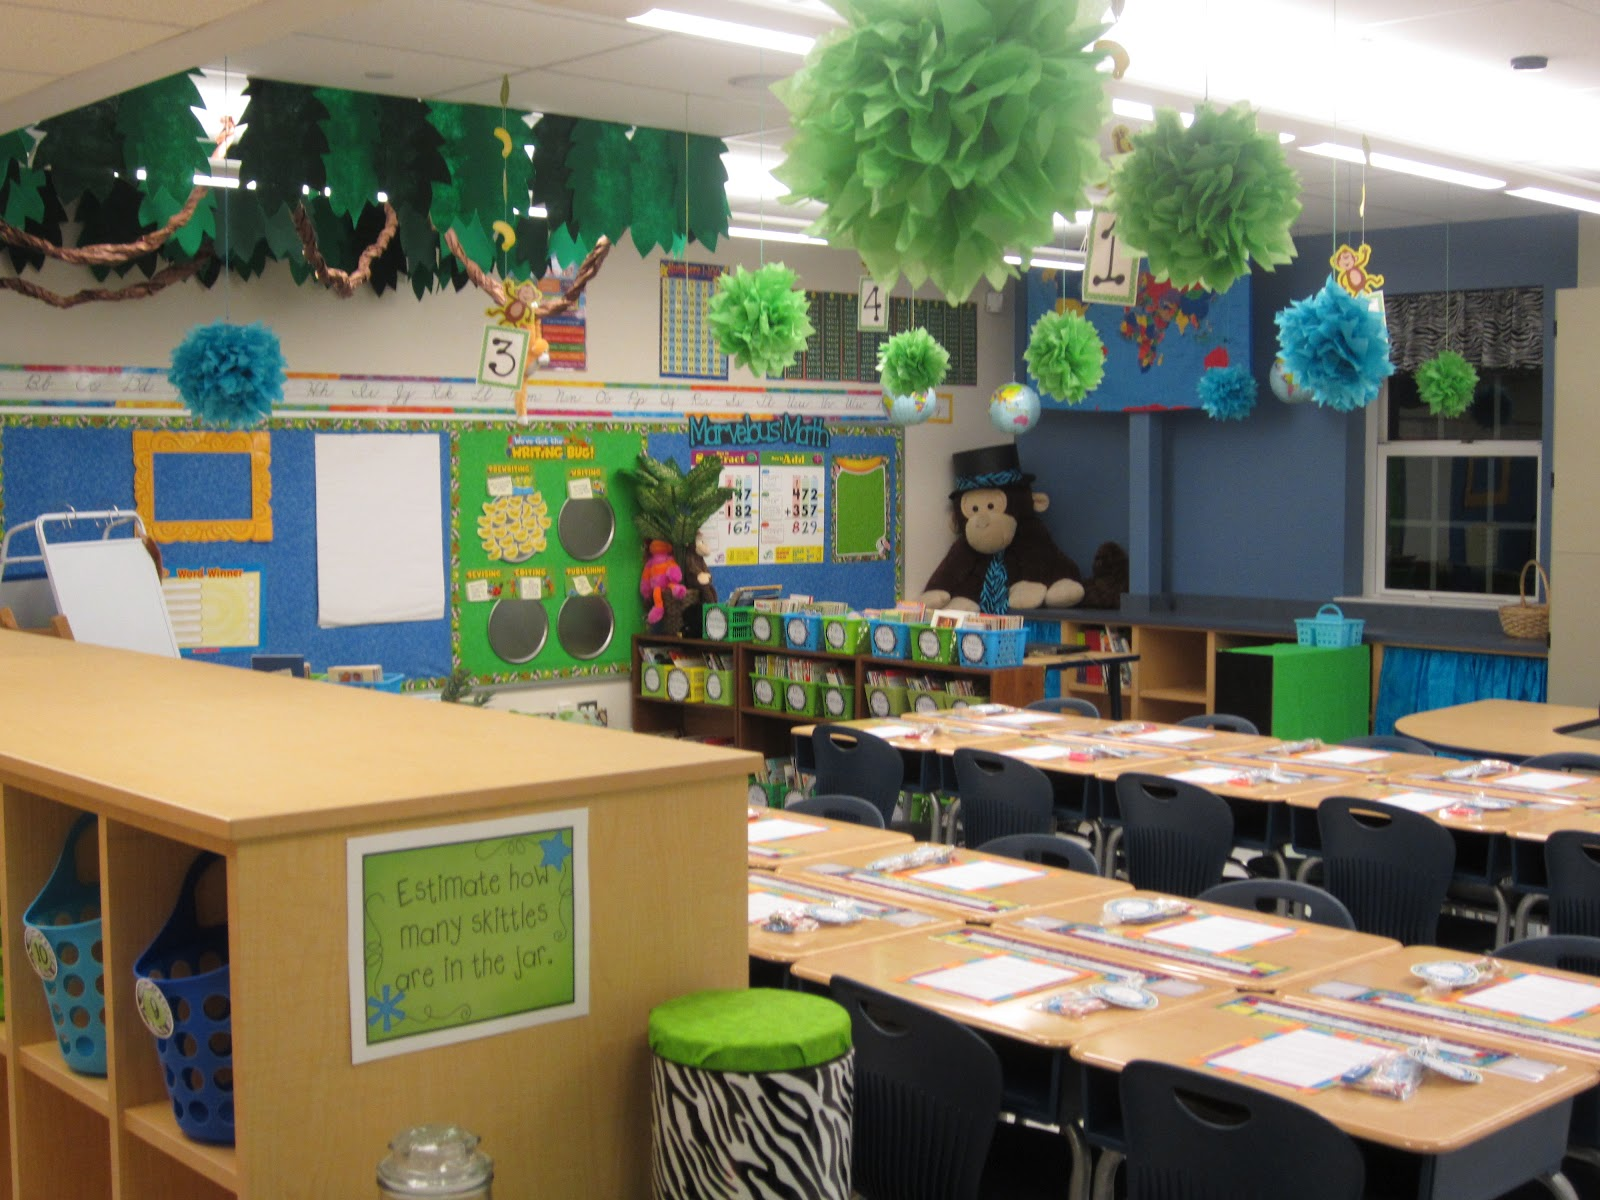 Classroom Decorating Ideas ~ The creative chalkboard classroom tour pictures galore